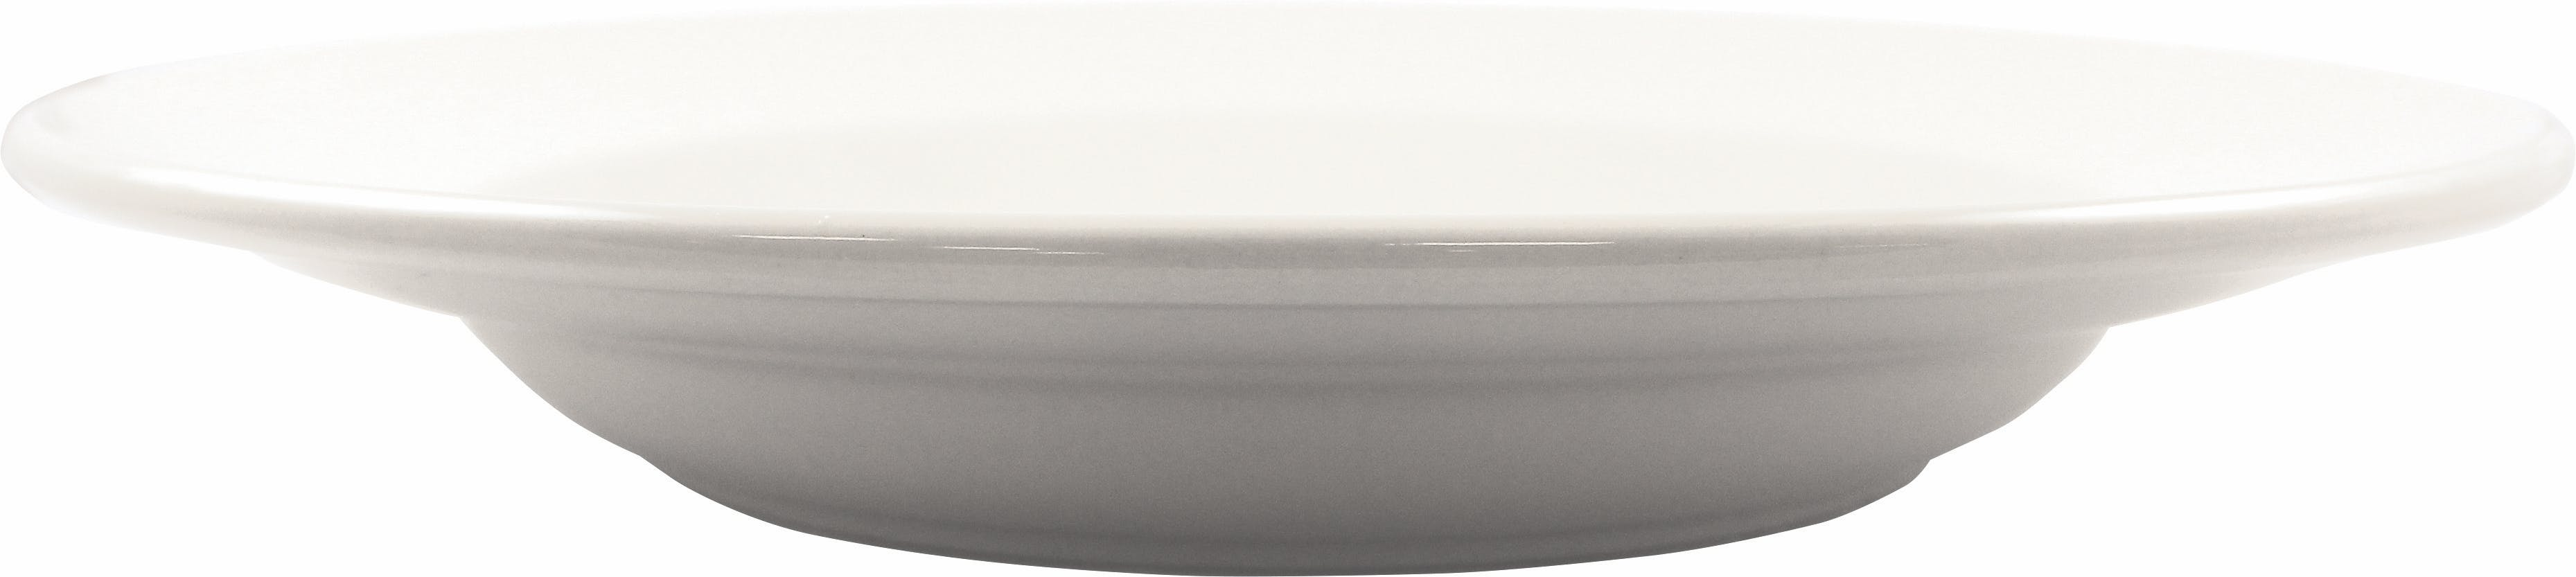 20 oz. Roma Rolled Edge Pasta Bowl Plate sold by Prestige Glassware